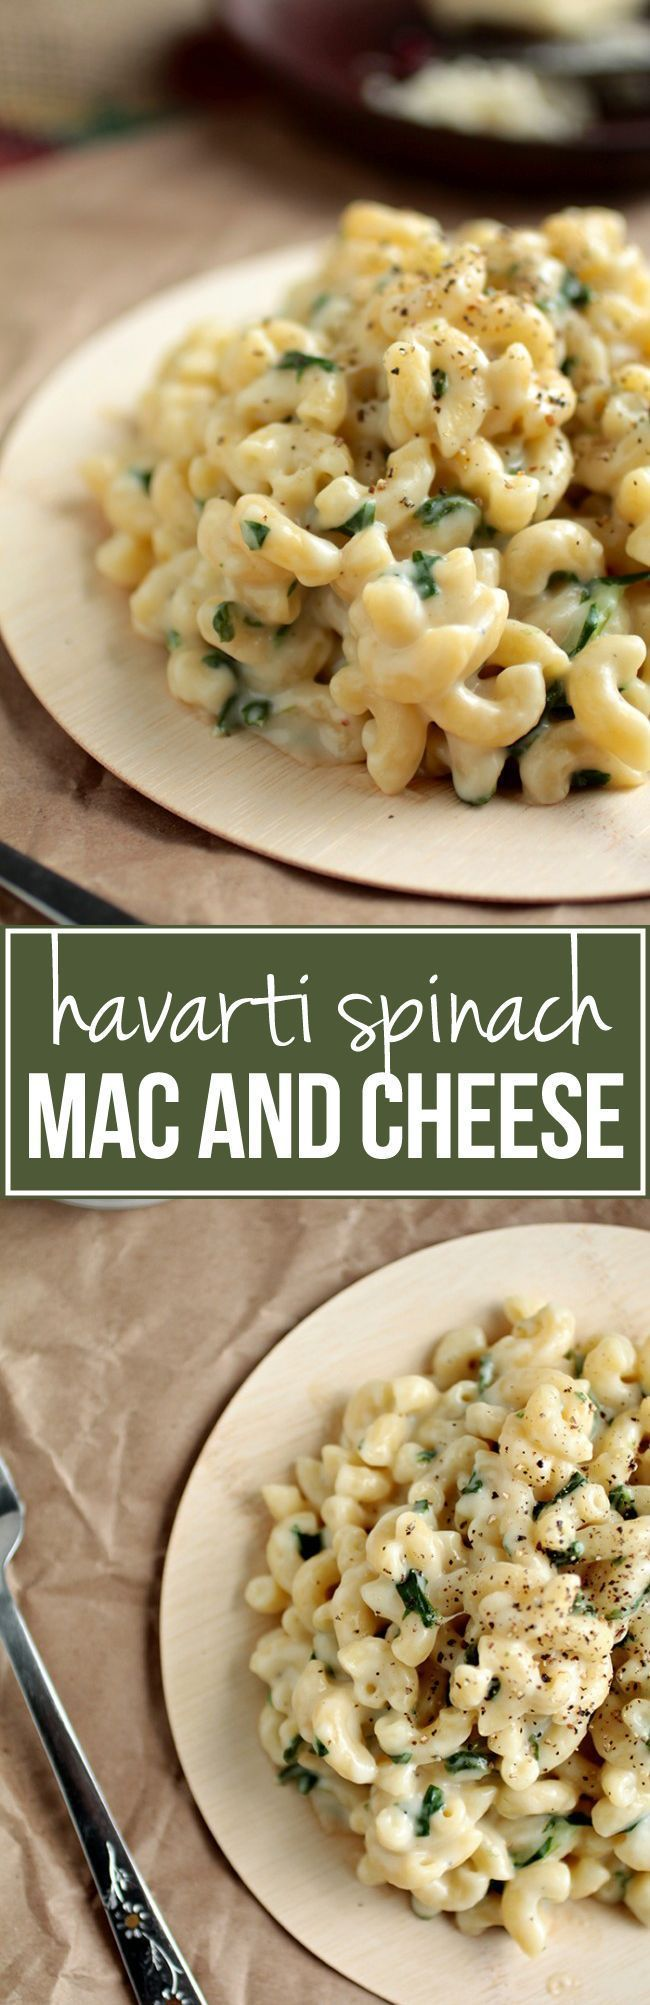 Havarti Spinach Mac and Cheese | One of my FAVORITE mac and cheese recipes…